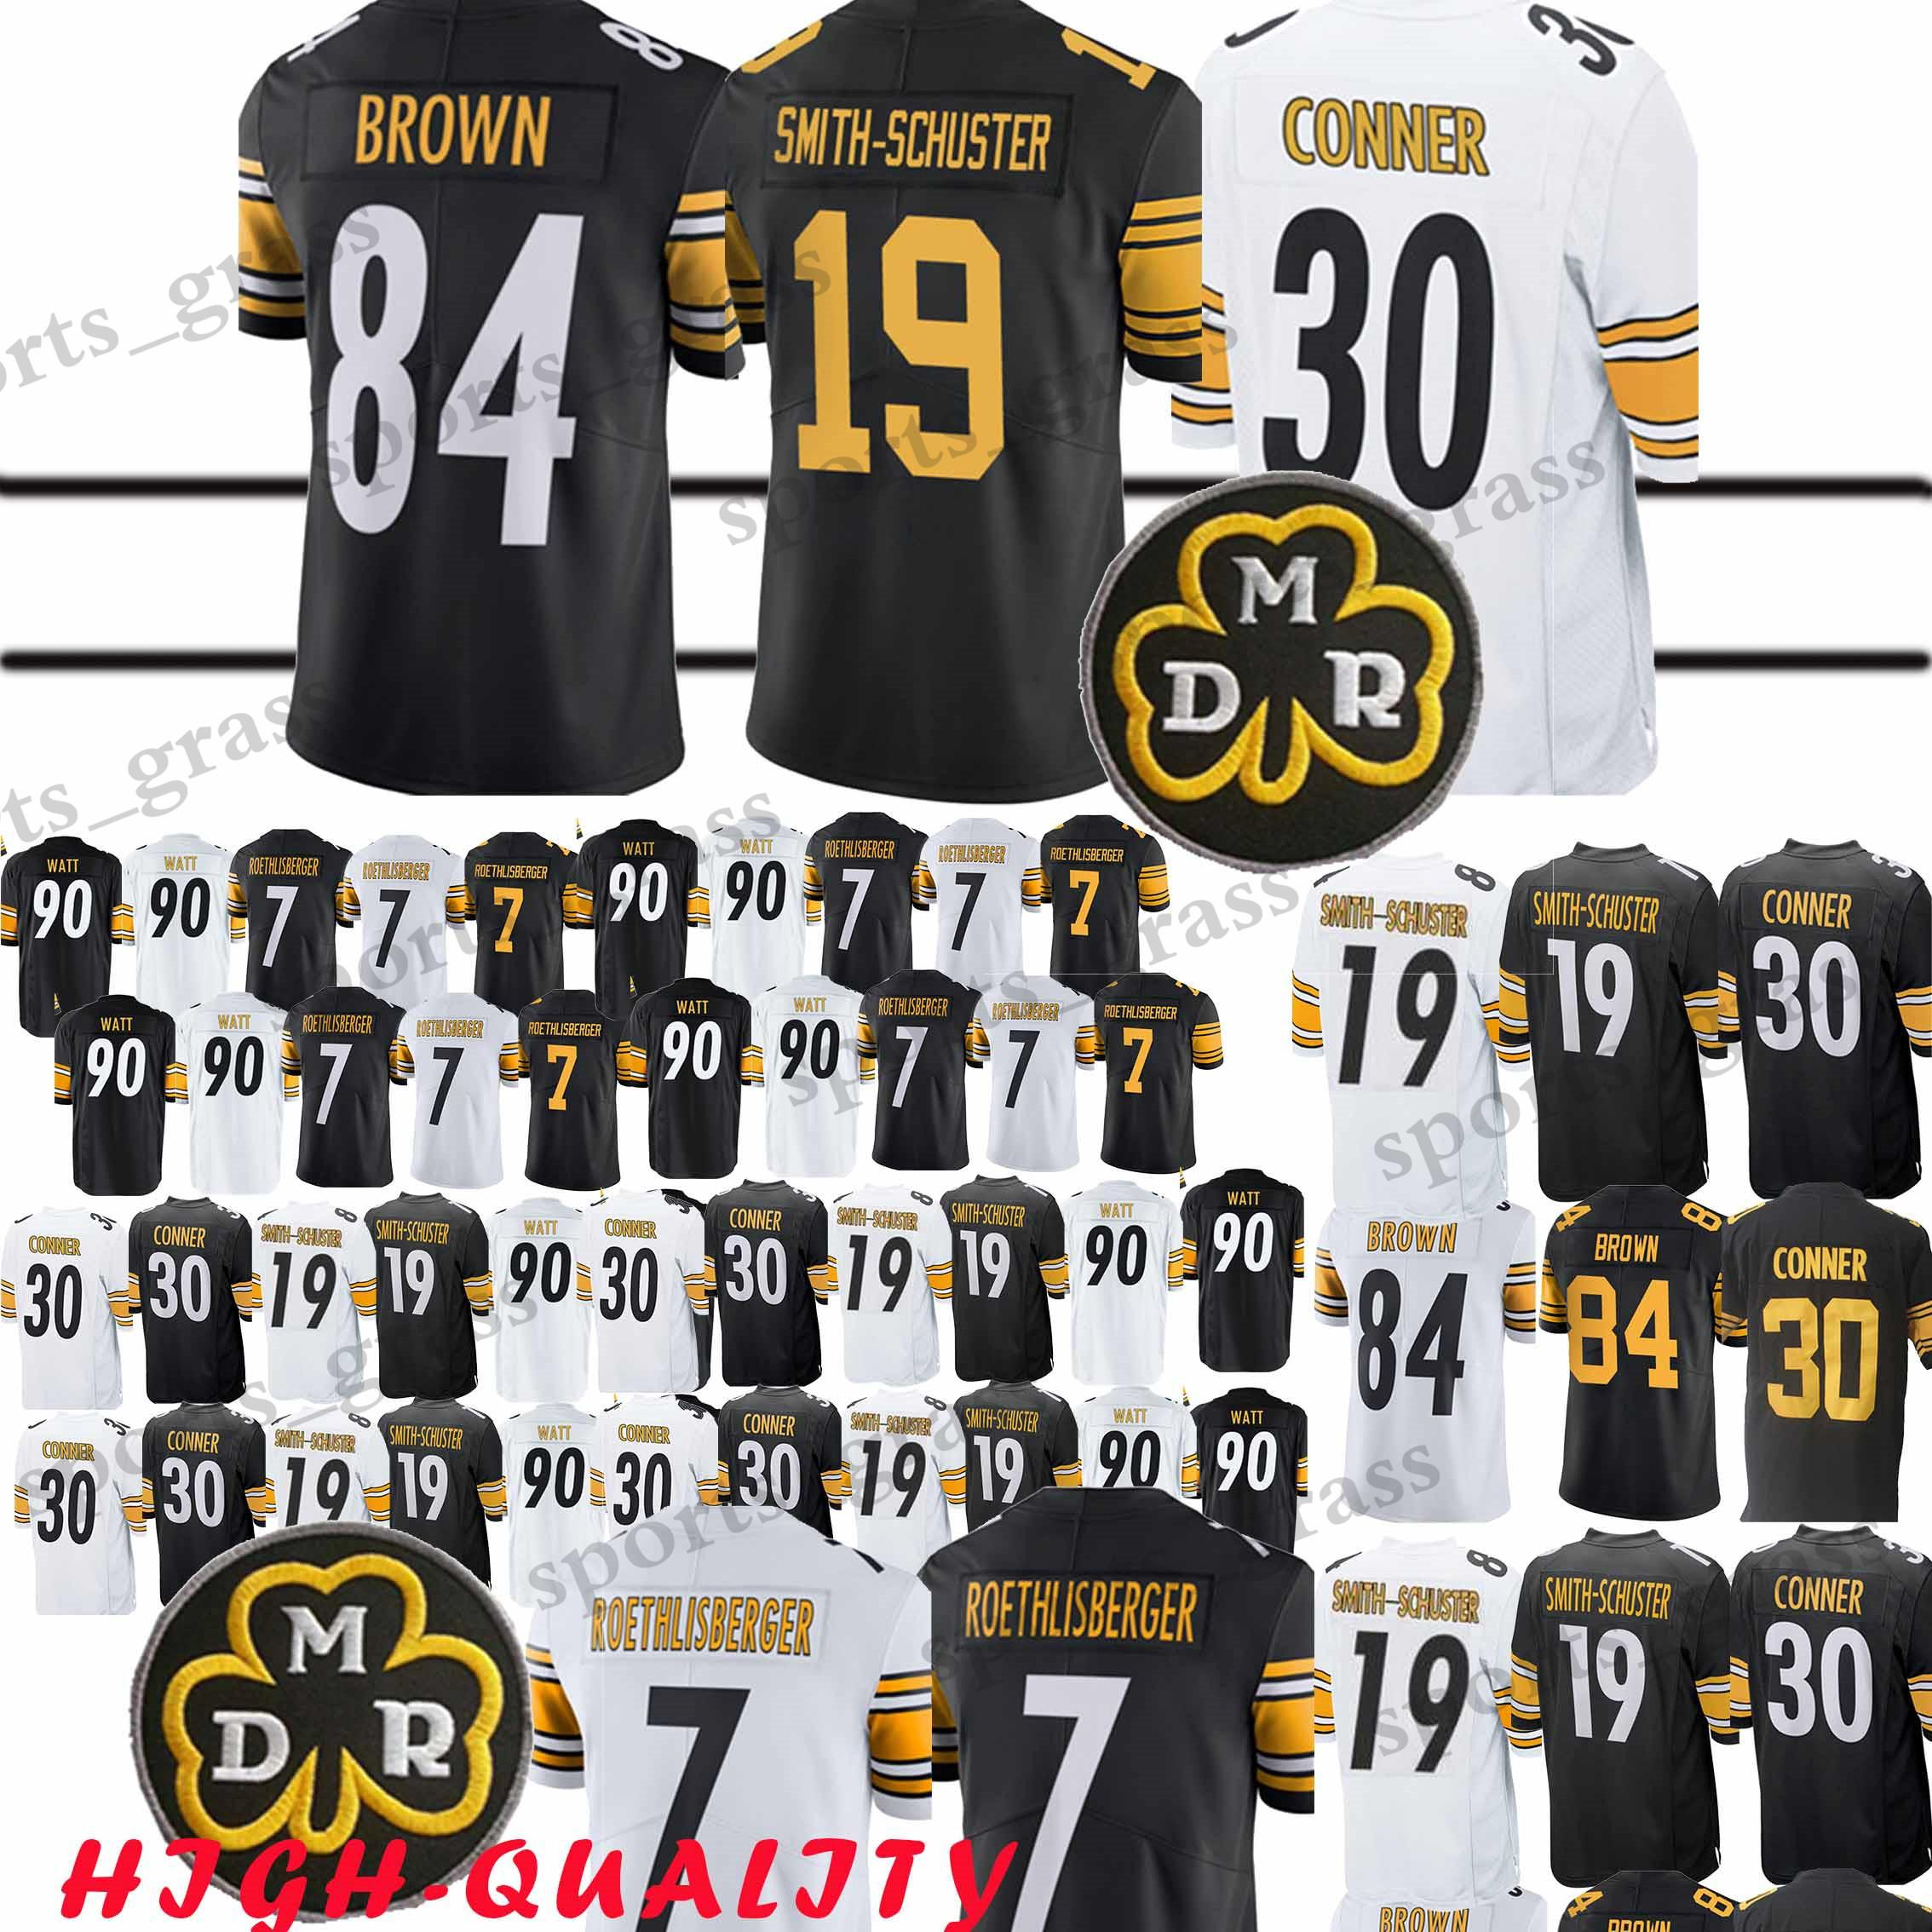 brand new ee1a9 93127 30 James Conner 2019 Pittsburgh Steeler jerseys 7 Ben Roethlisberger 19  Juju Smith-Schuster 90 T.J. Watt jerseys promotion